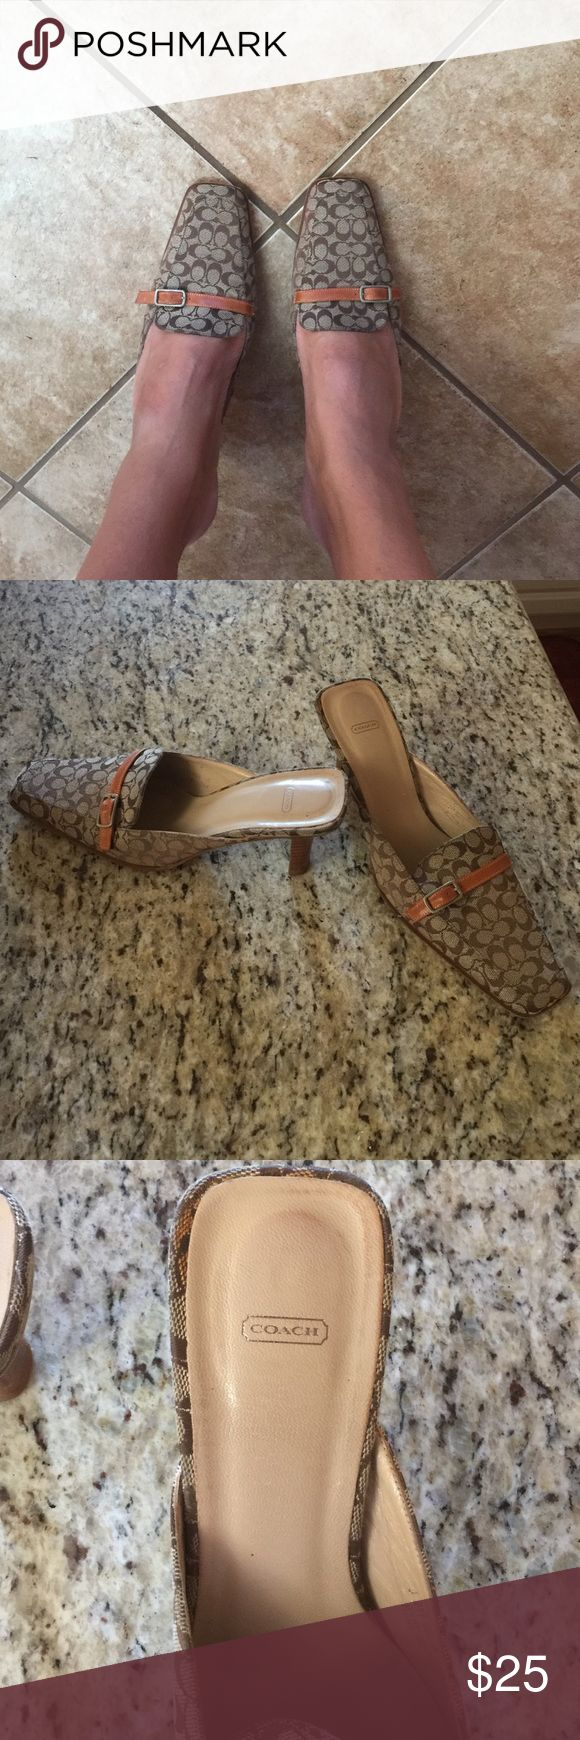 Coach loafer high heel. Signature Coach Italian loafer. Coach Shoes Heels